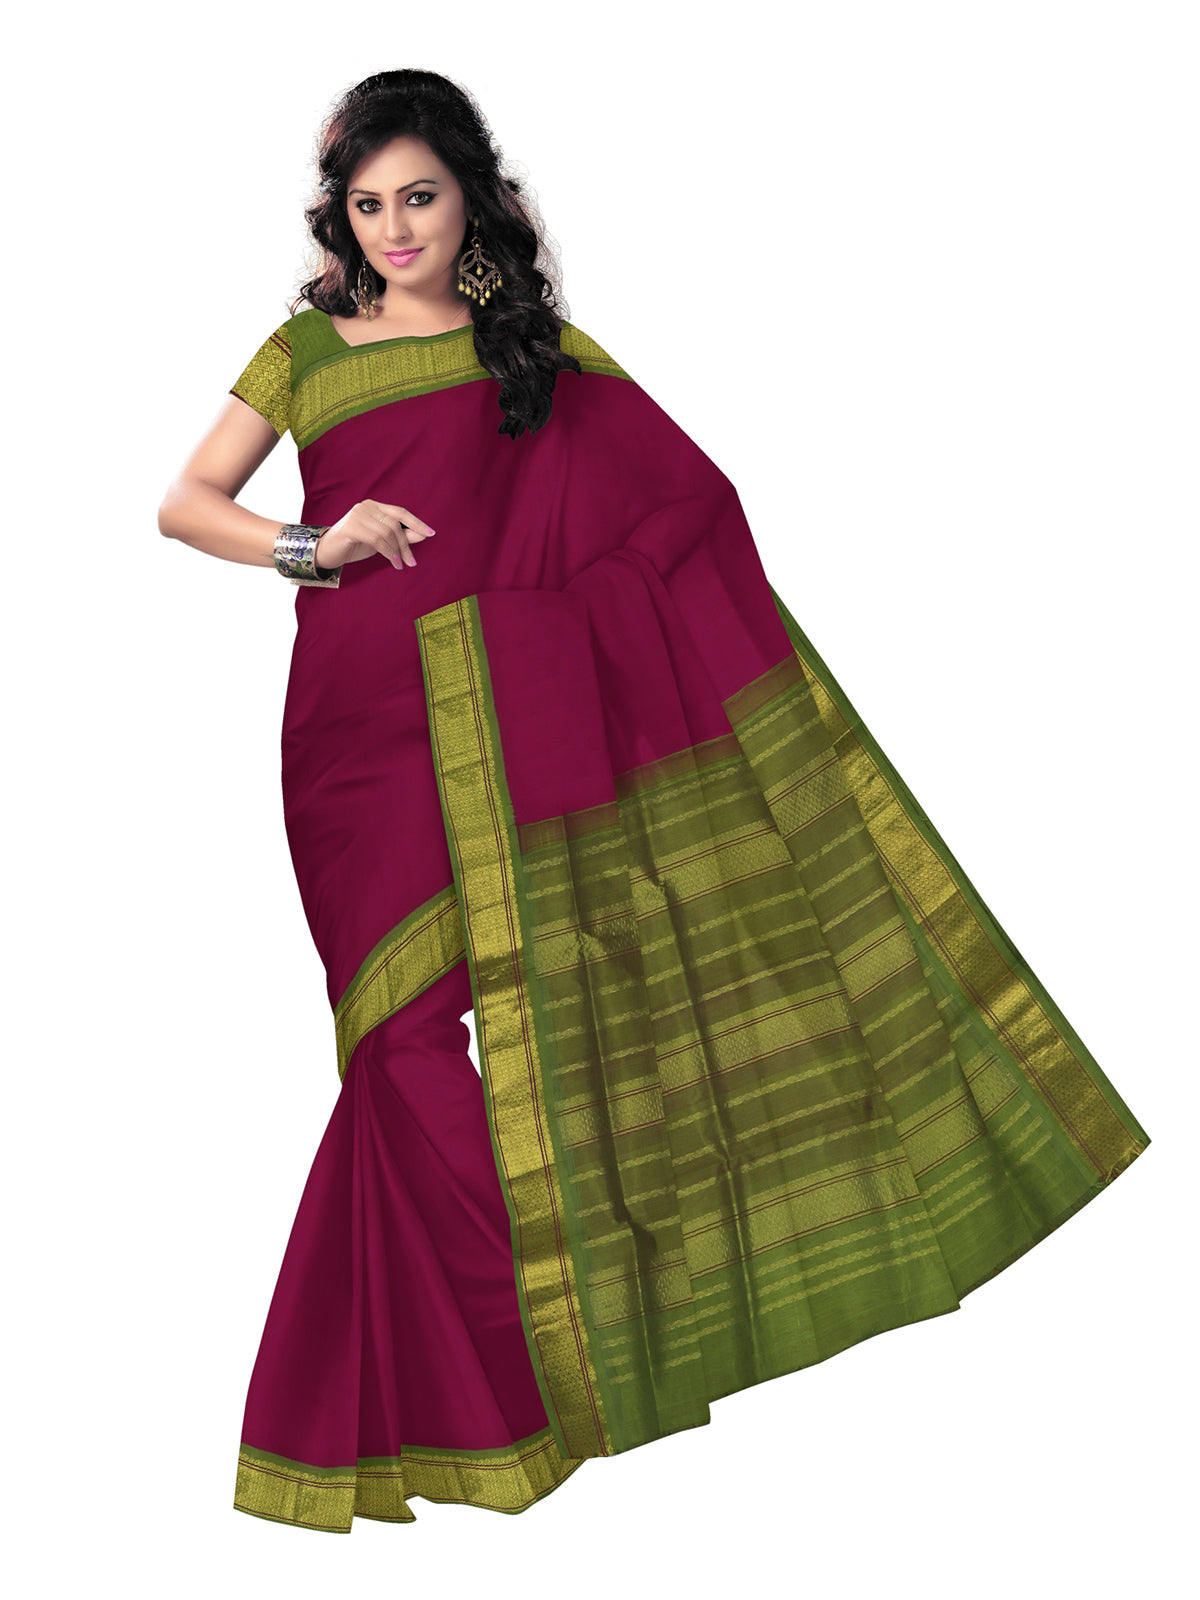 silk cotton saree -Dark Pink and Mehandi Green with zari border Korvai